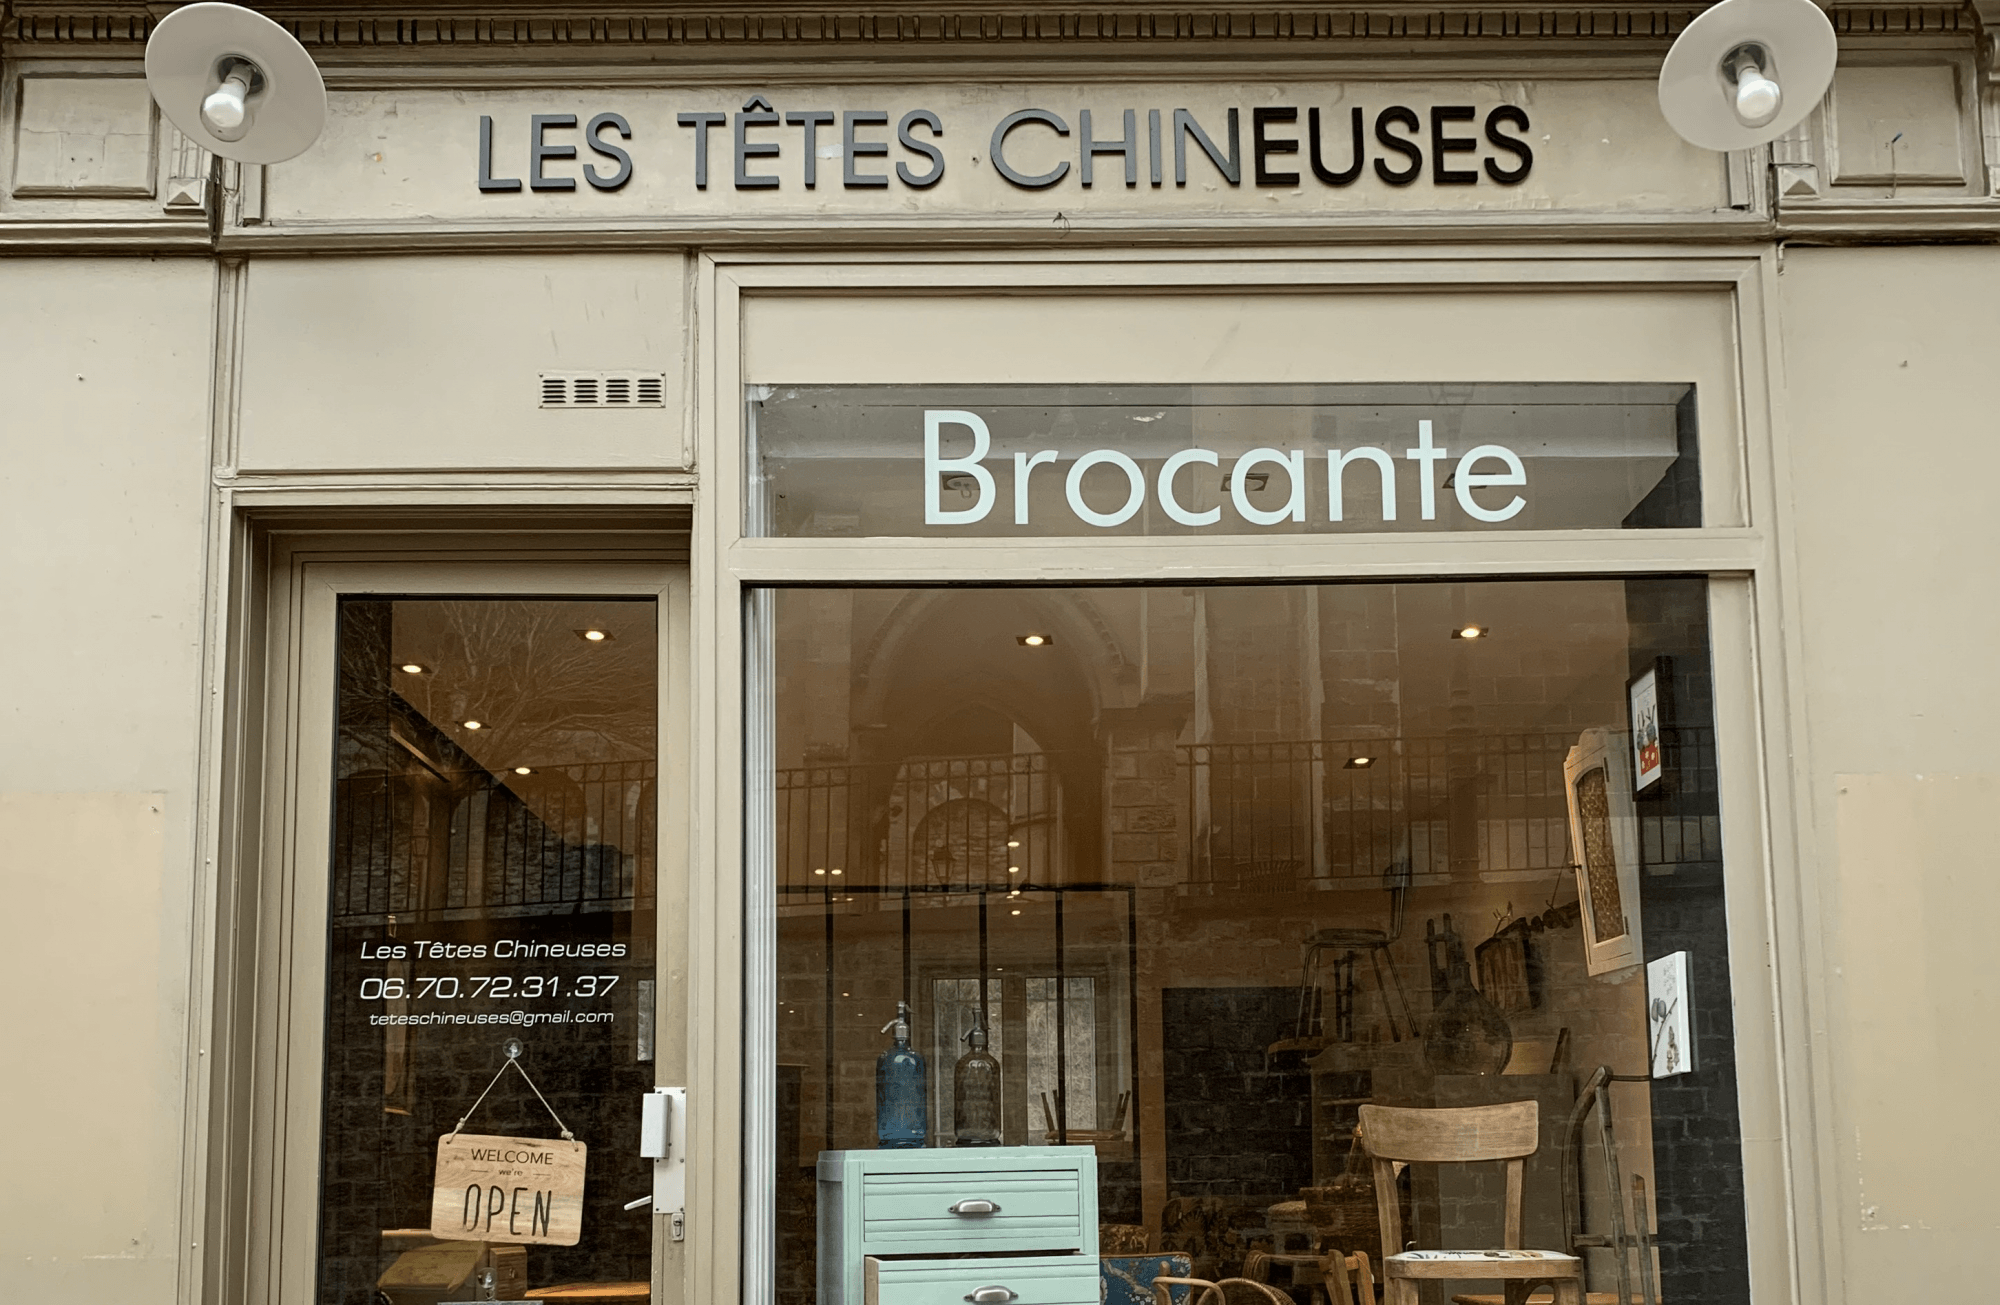 Les Têtes Chineuses